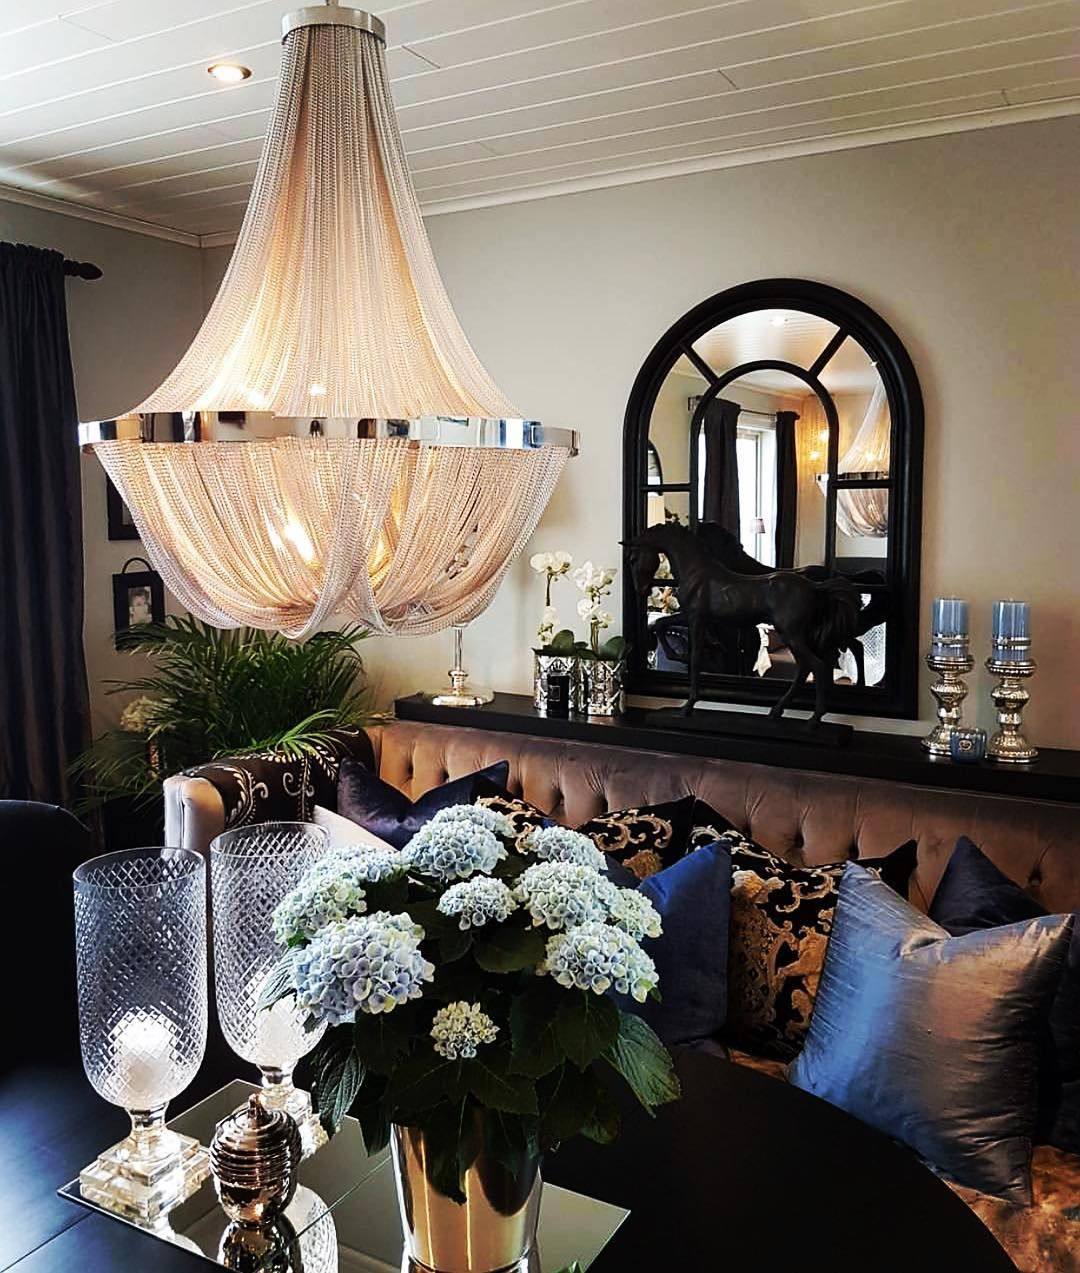 Premier Home Staging California Hgtv: Now That's How You Stage A Home For A Showing